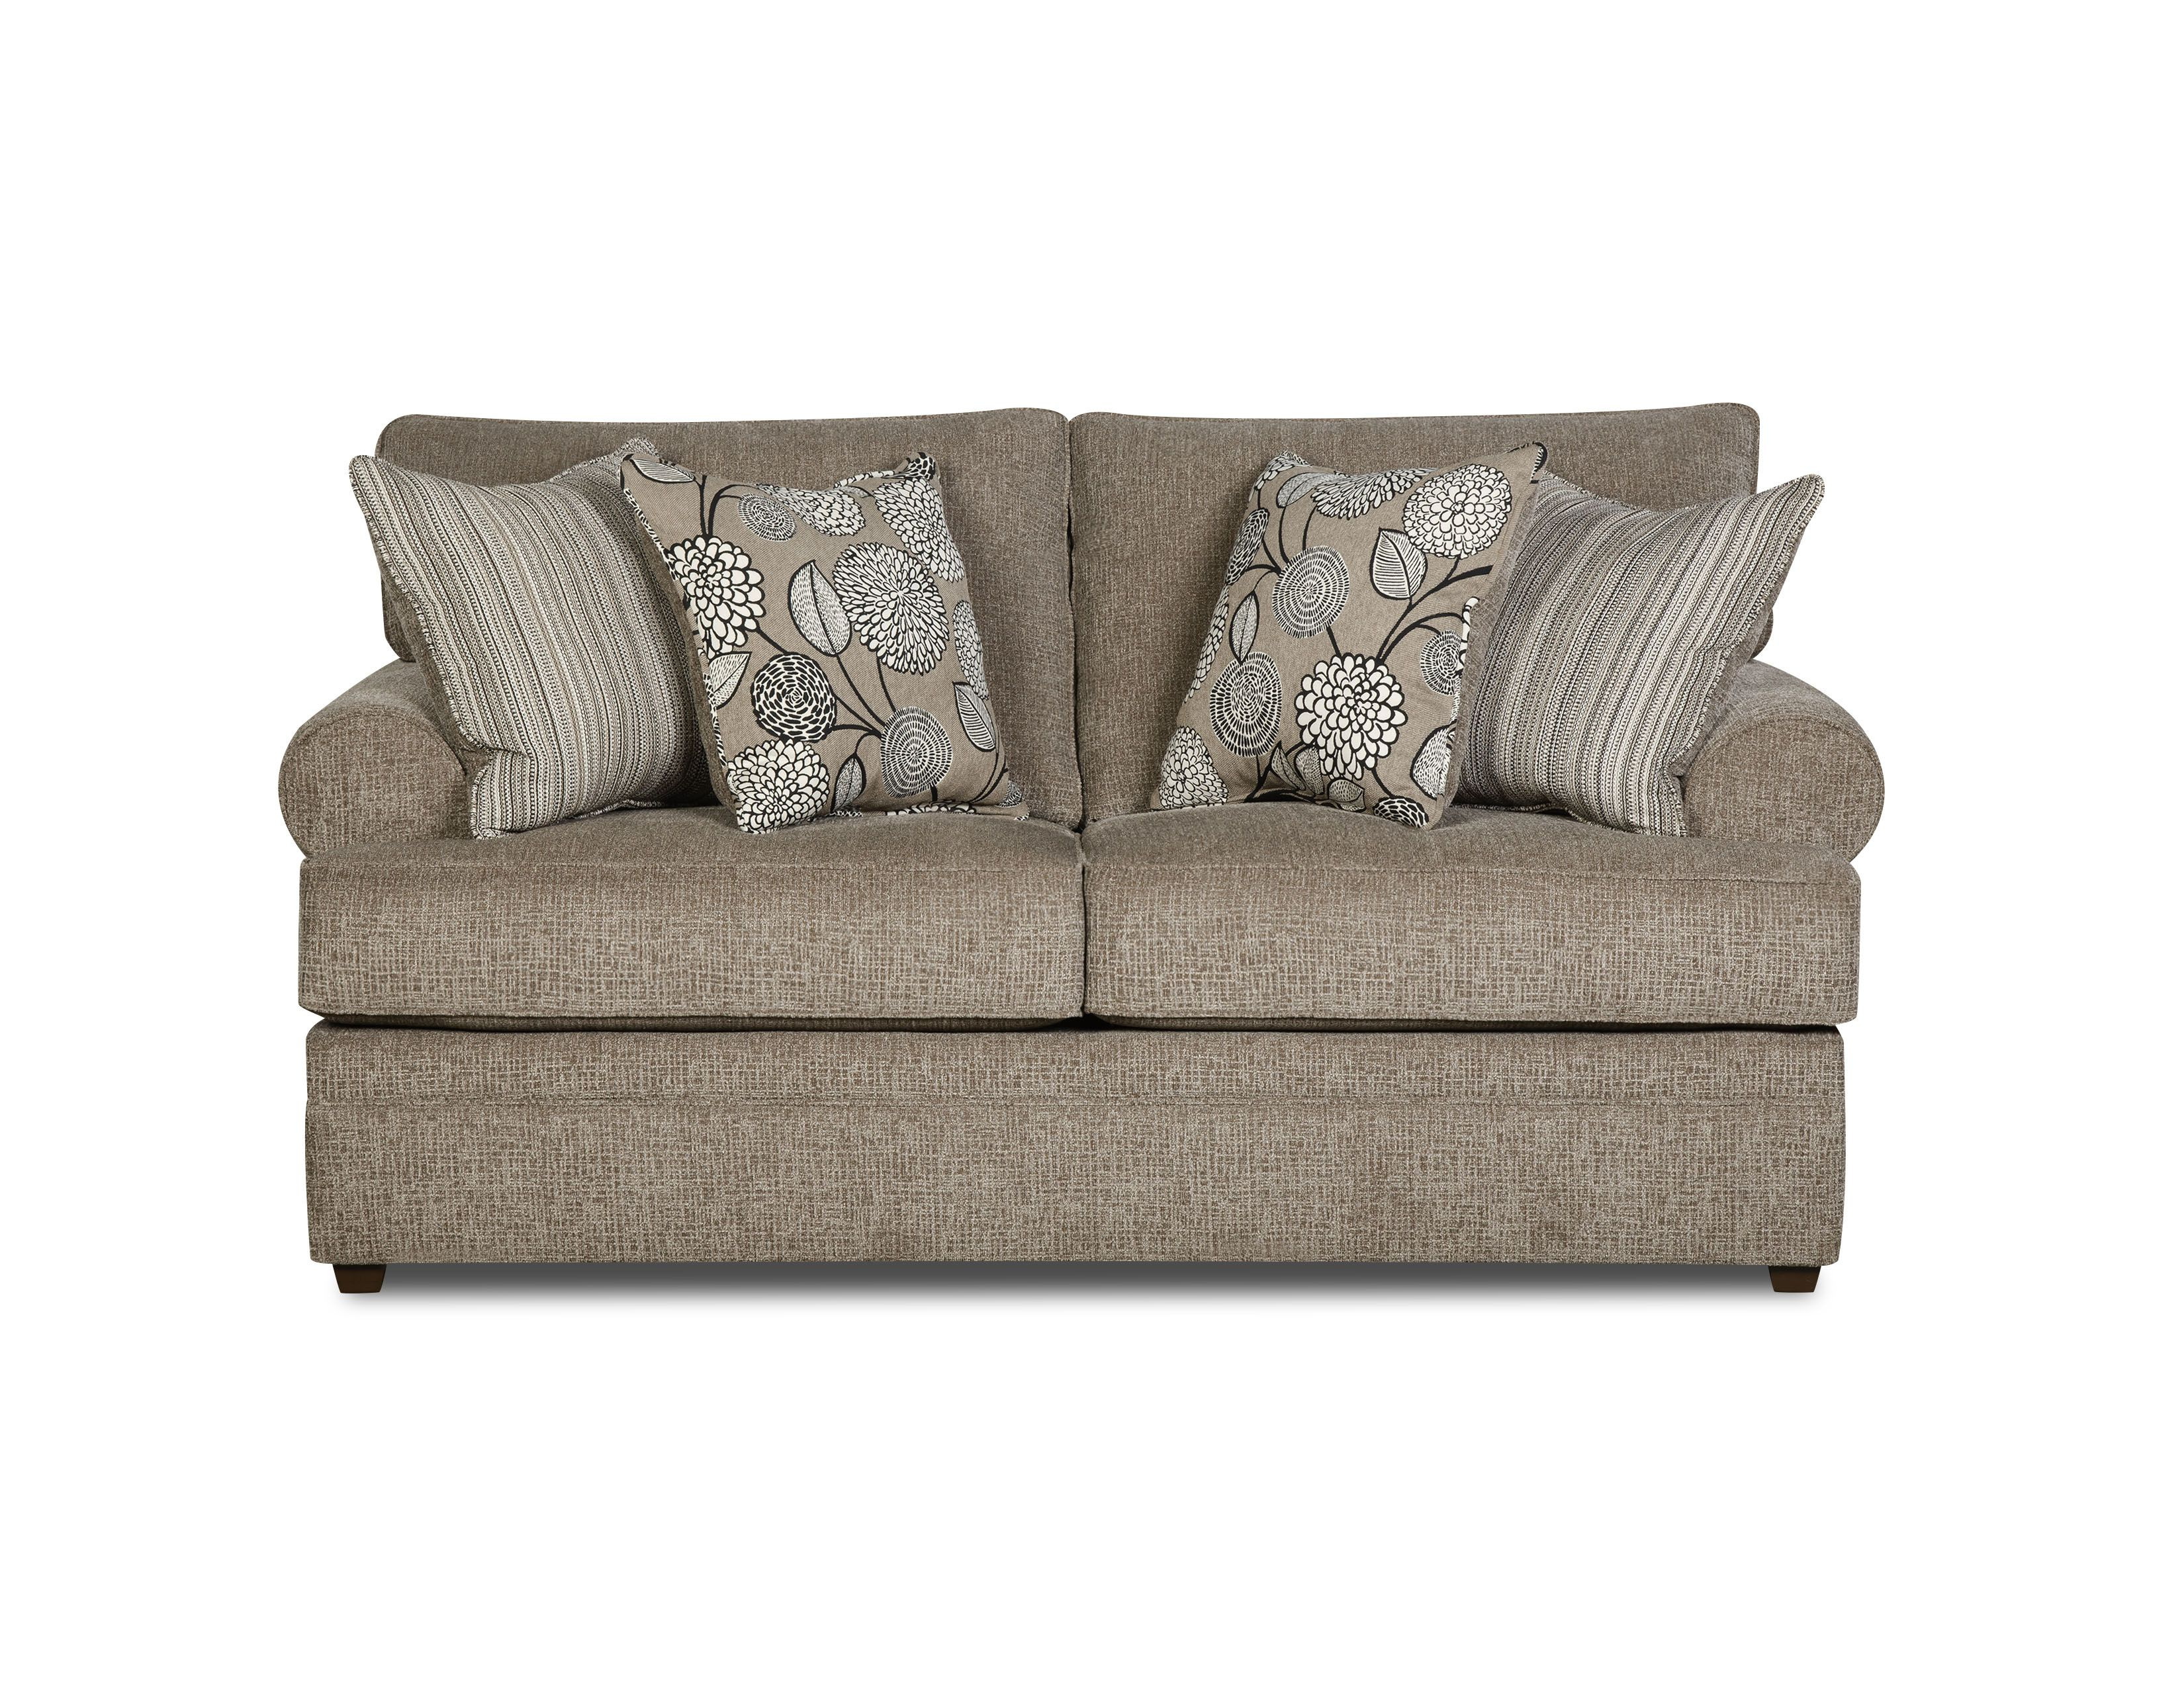 559 75 Quot Simmons Really Loveseat Sofa Upholstery